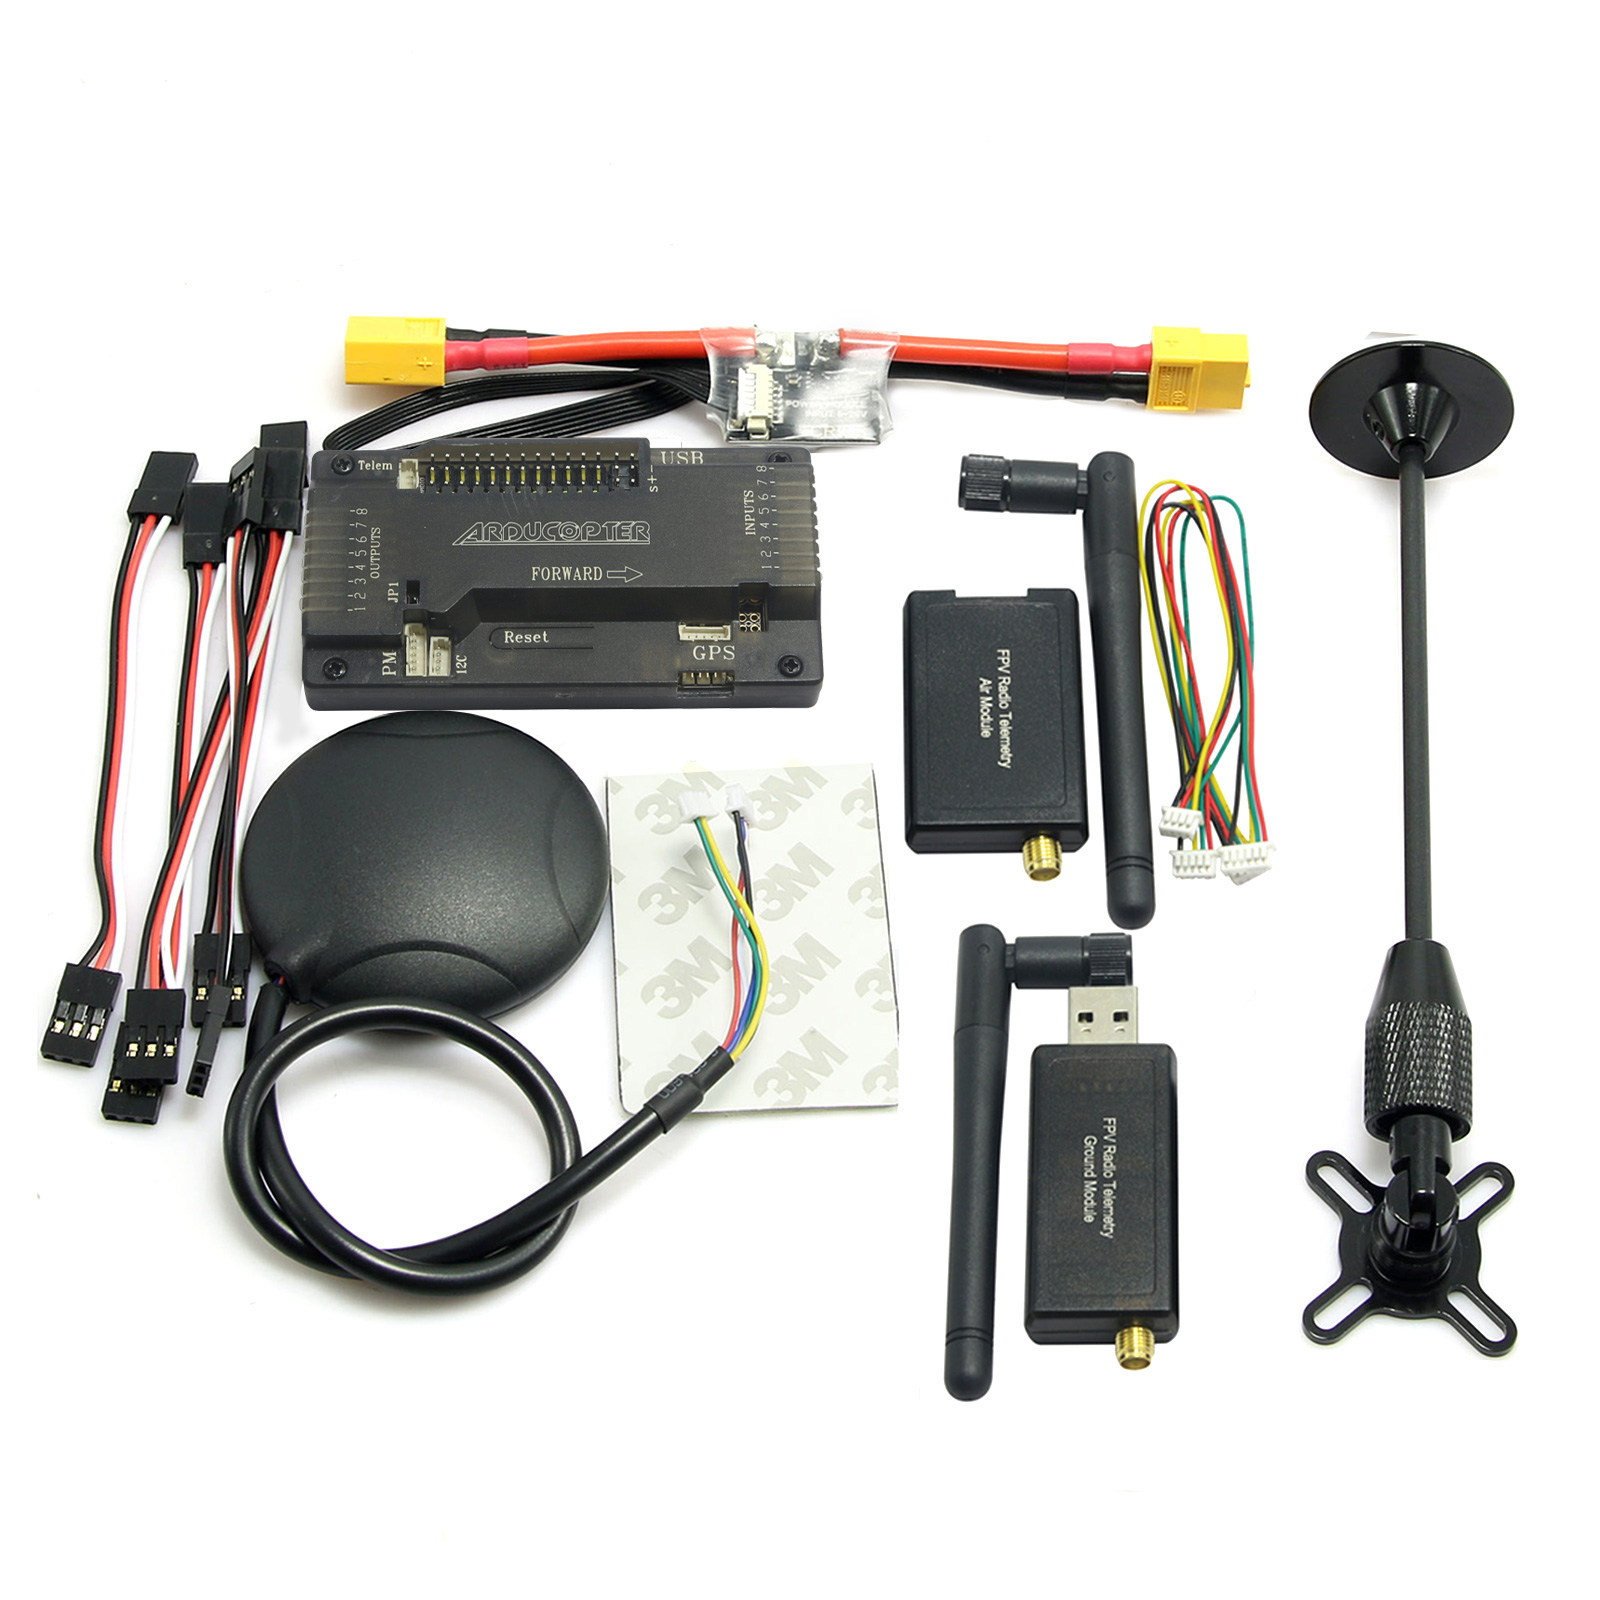 APM2.8 ArduPilot APM Flight Controller with M8N/Ublox GPS 6H and 3DR Telemetry & XT60 Power for FPV Drone Multicopter n j patil r h chile and l m waghmare design of adaptive fuzzy controllers